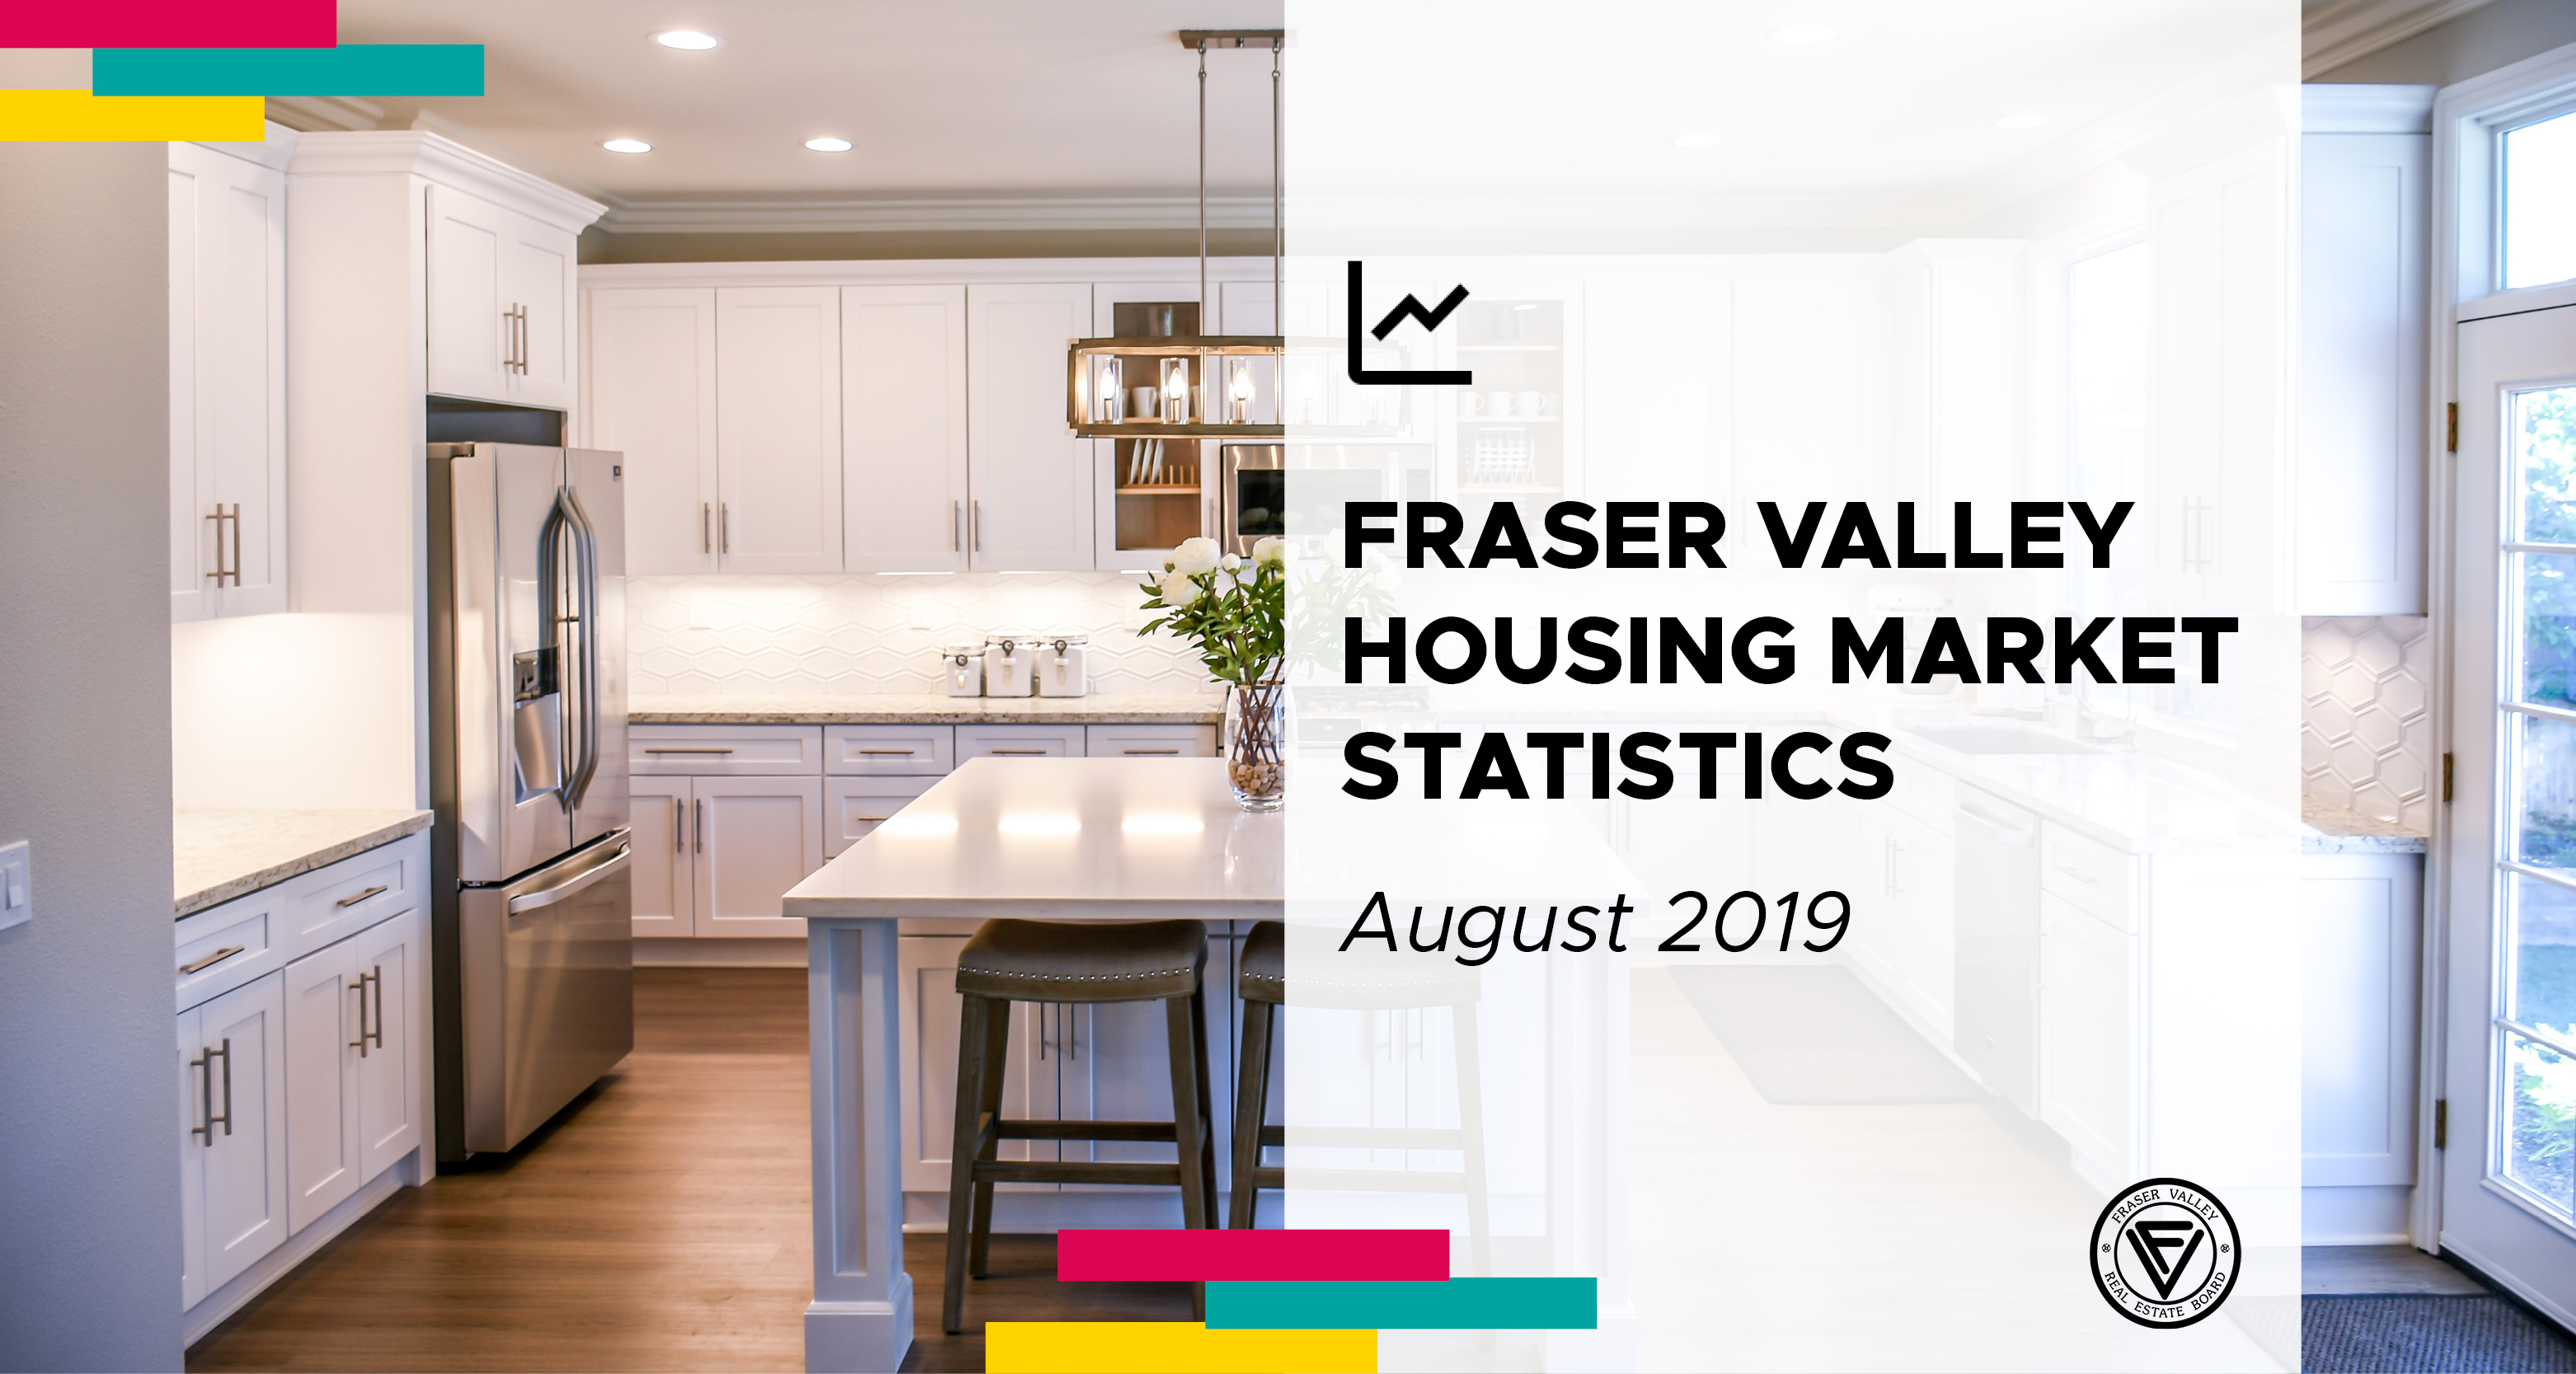 Fraser Valley housing market continues to stabilize as sales pick up compared to last year